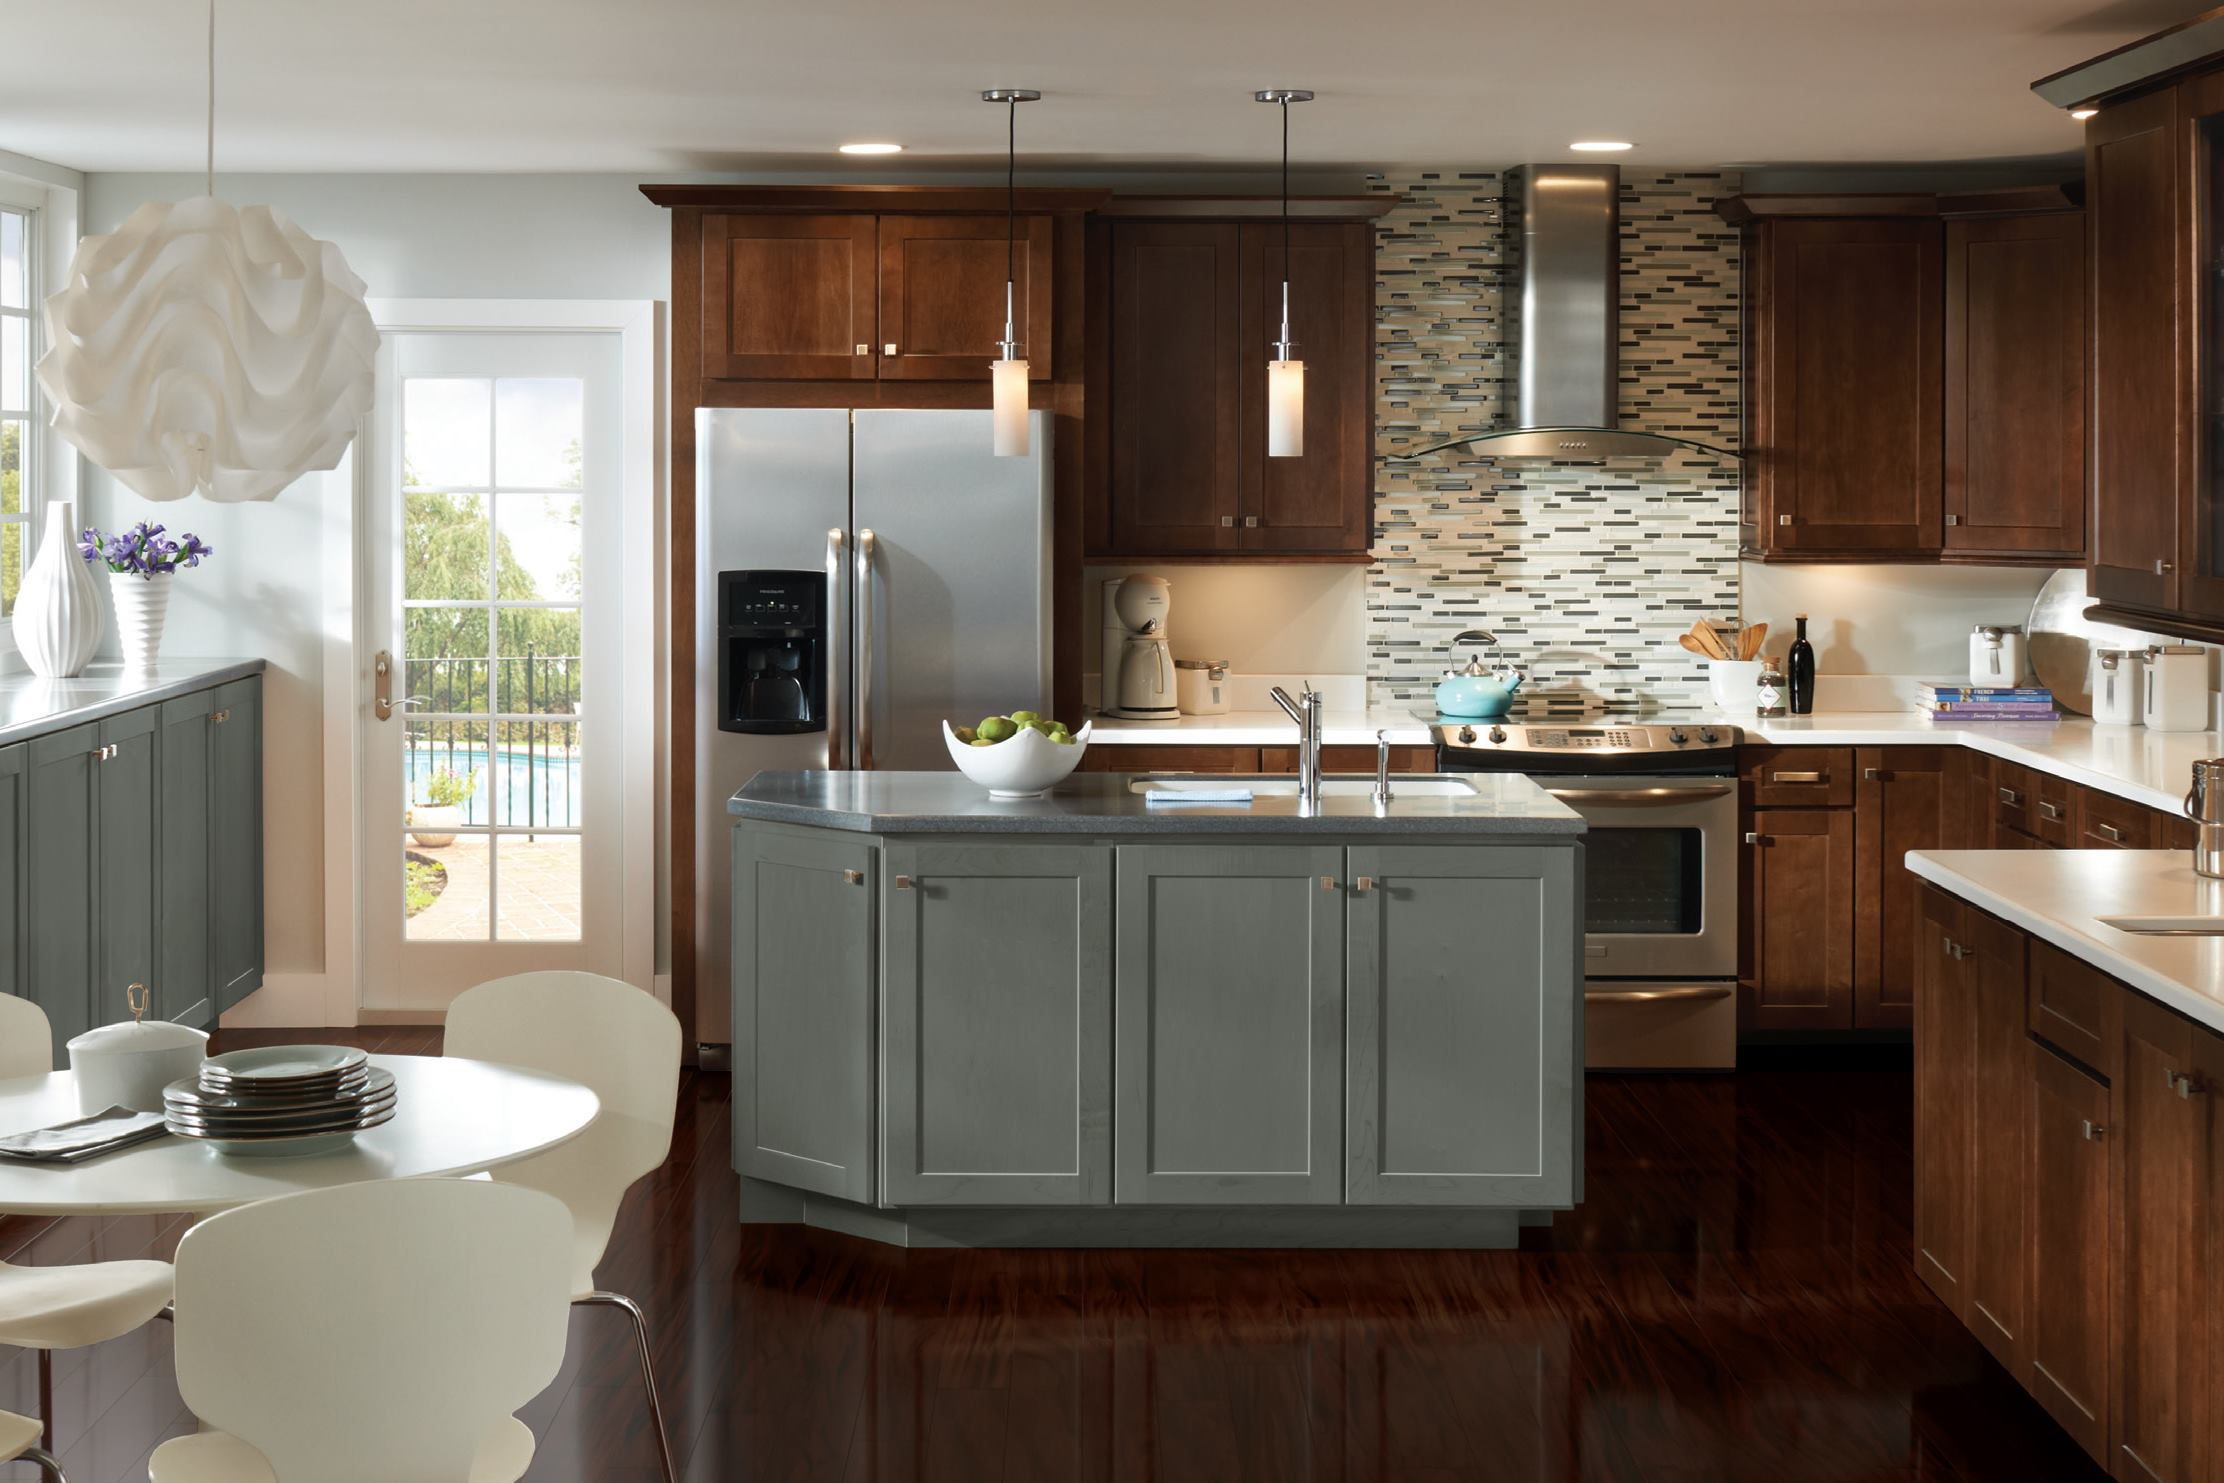 kitchen cabinets to go sink lighting armstrong relaunches as echelon cabinetry | jlc ...